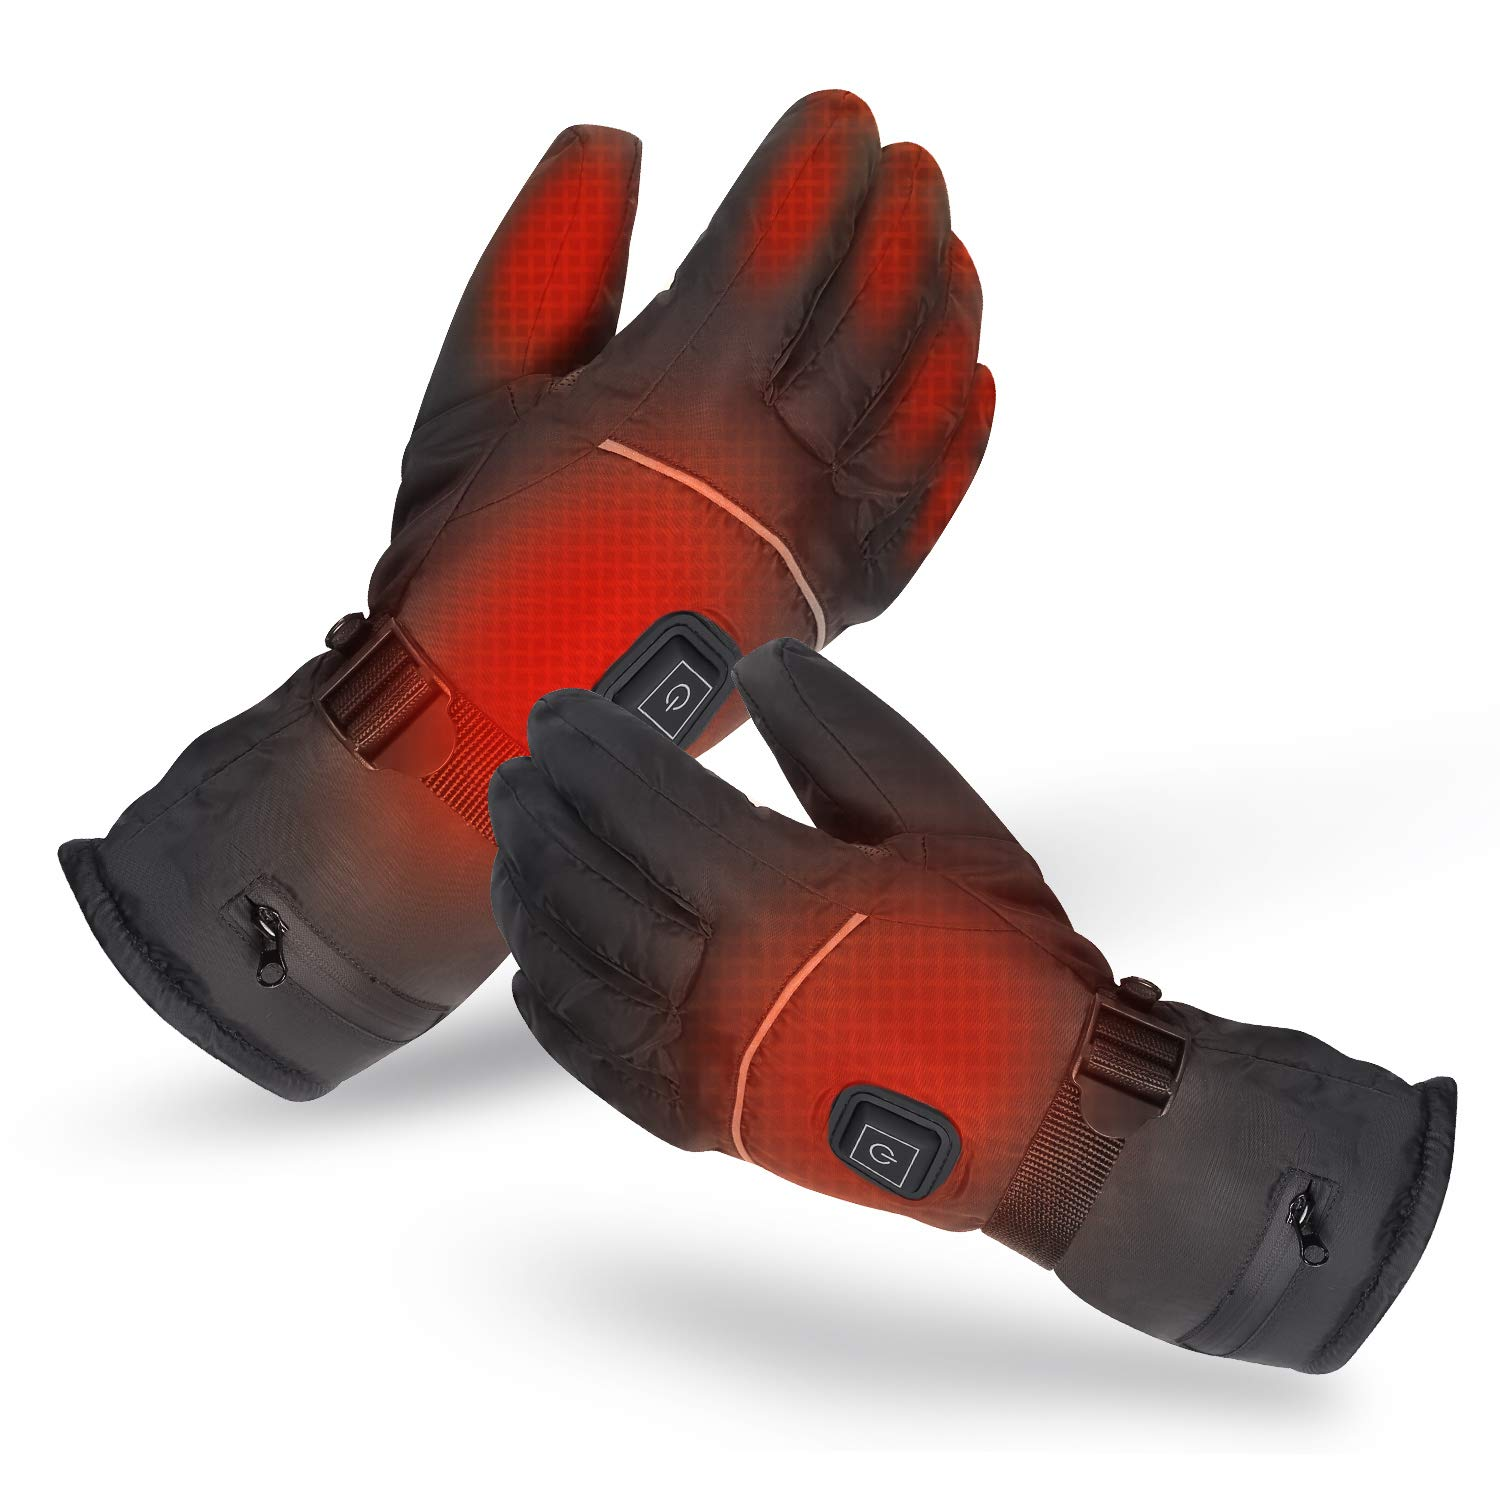 KZY Heated Gloves, Winter Heating Gloves for Men and Women, Rechargeable Battery Warm Gloves for Cycling Motorcycle Hiking Skiing by KZY